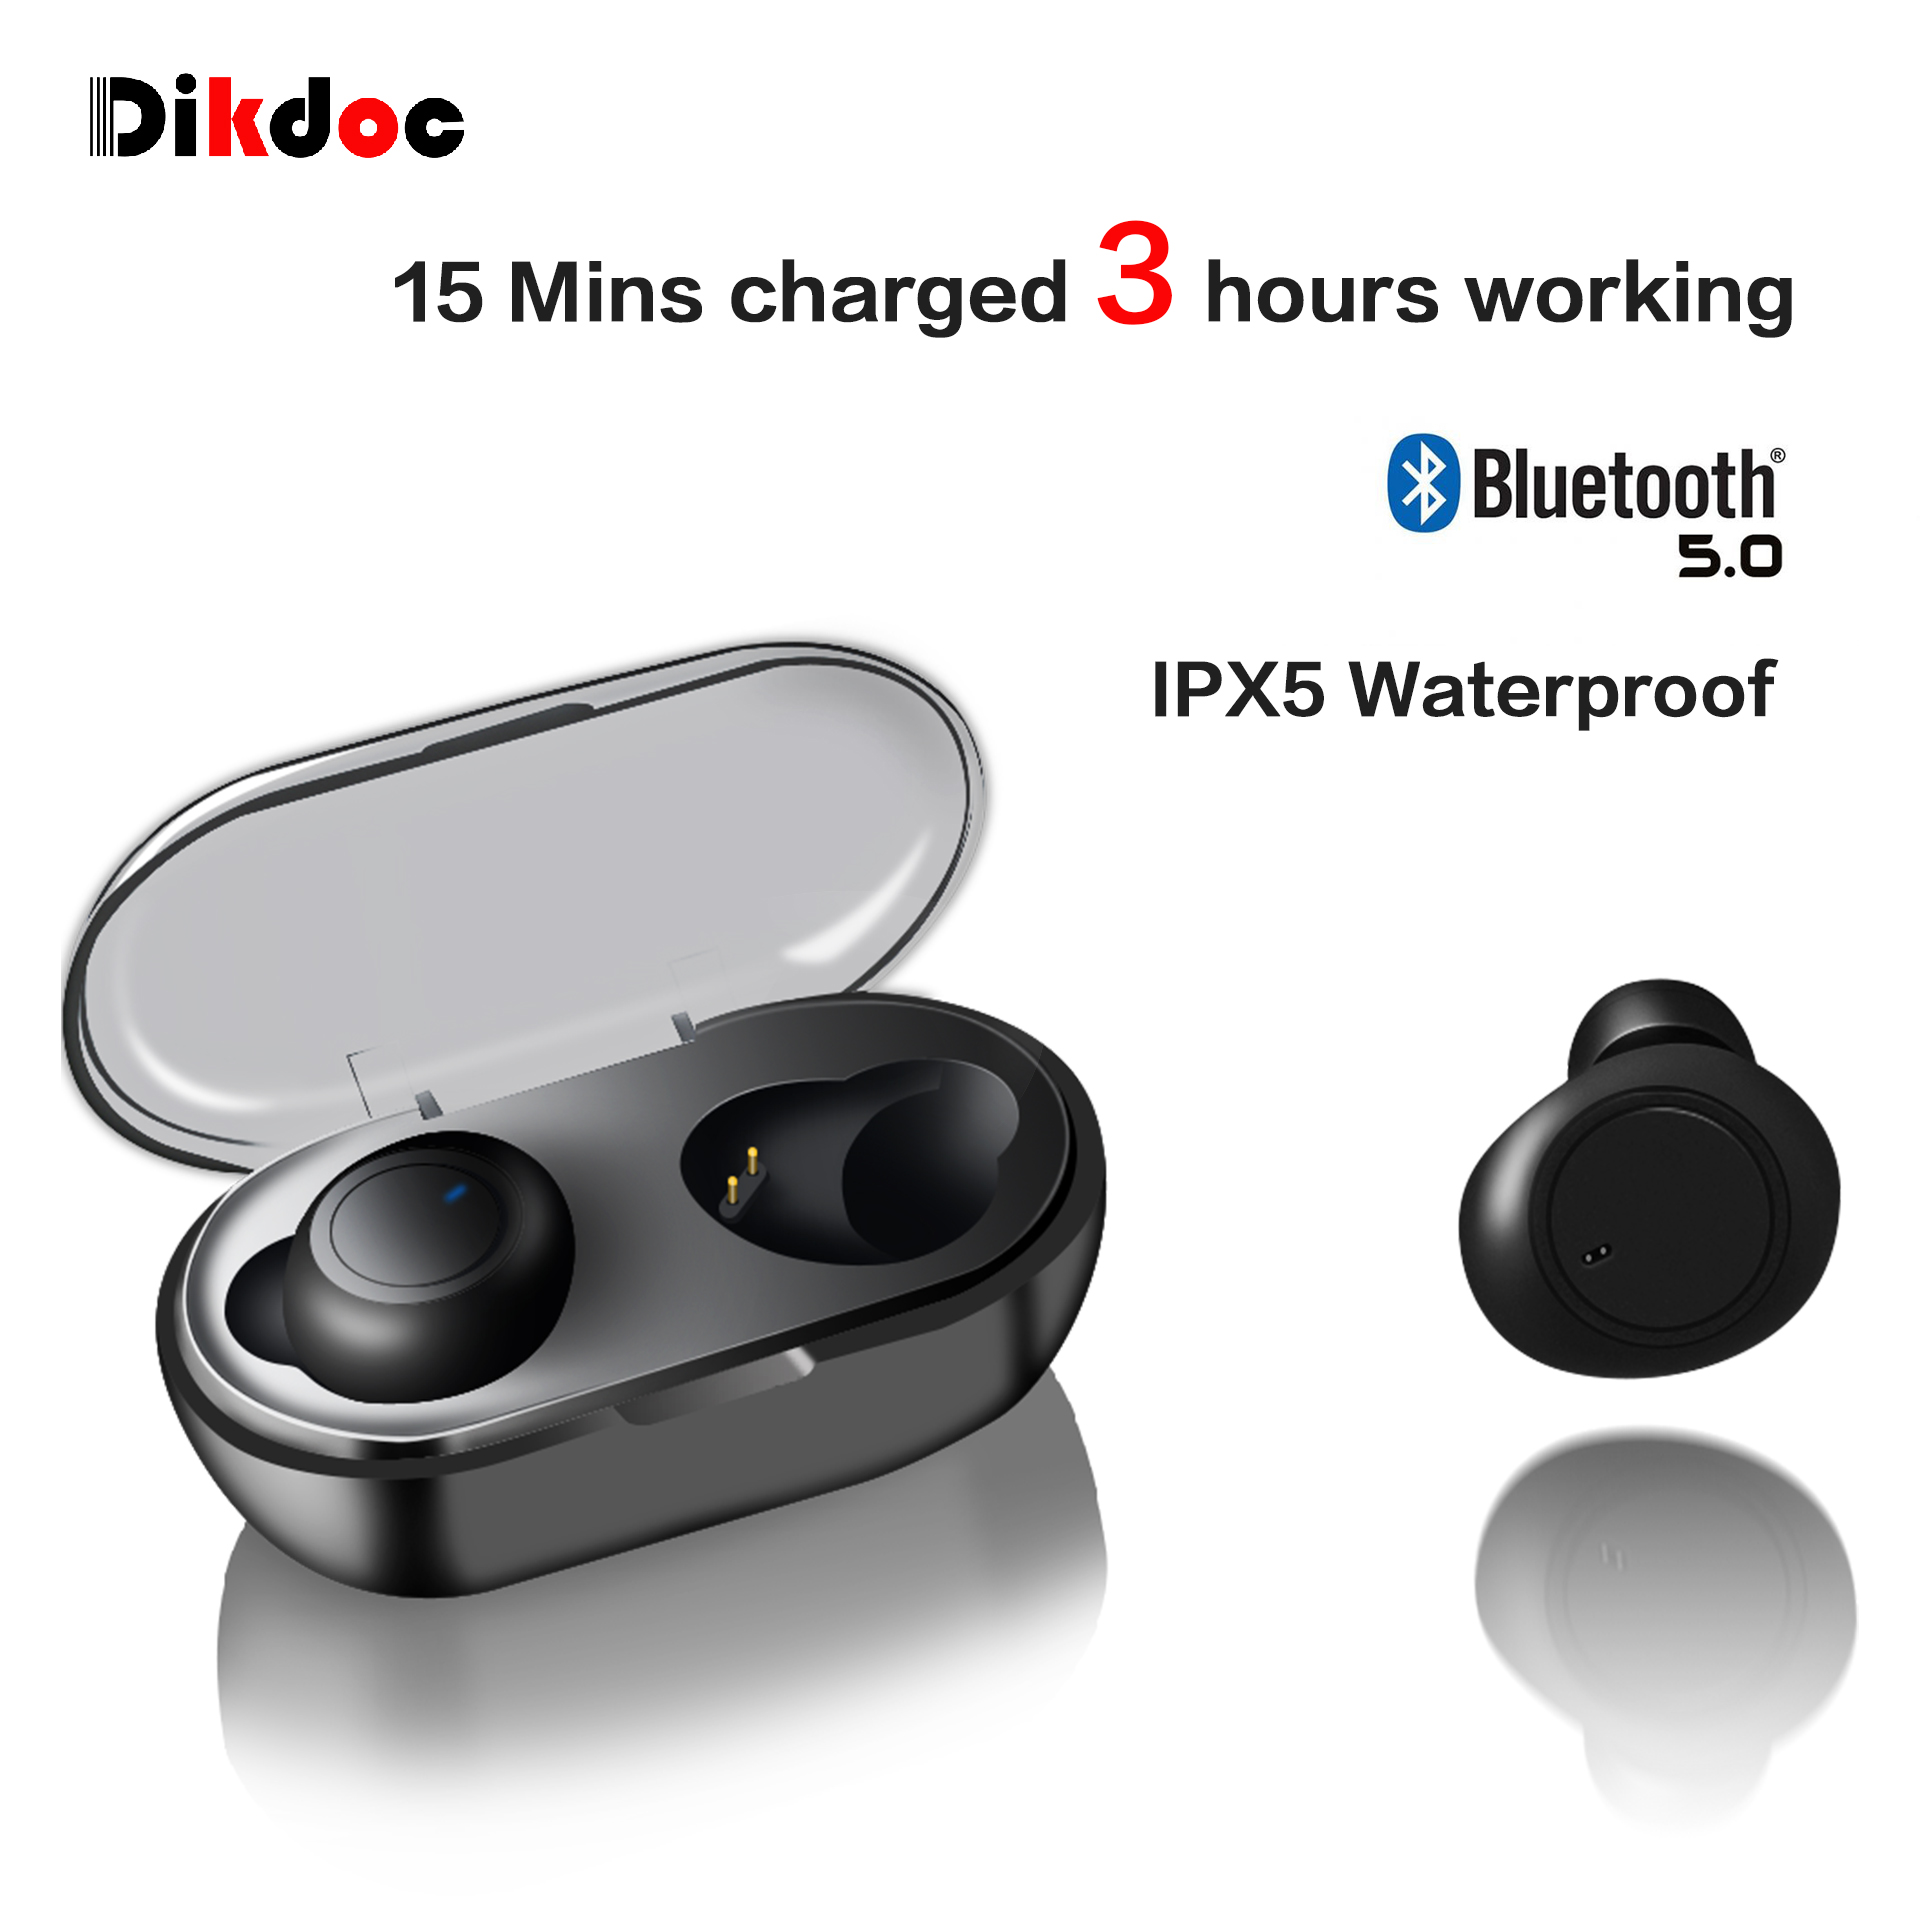 Dikdoc Wireless Earbuds Bluetooth Earphones TWS Waterproof In earphone Handfrees Noise Cancelltion BT 5.0 For Galaxy Sport Buds-in Bluetooth Earphones & Headphones from Consumer Electronics